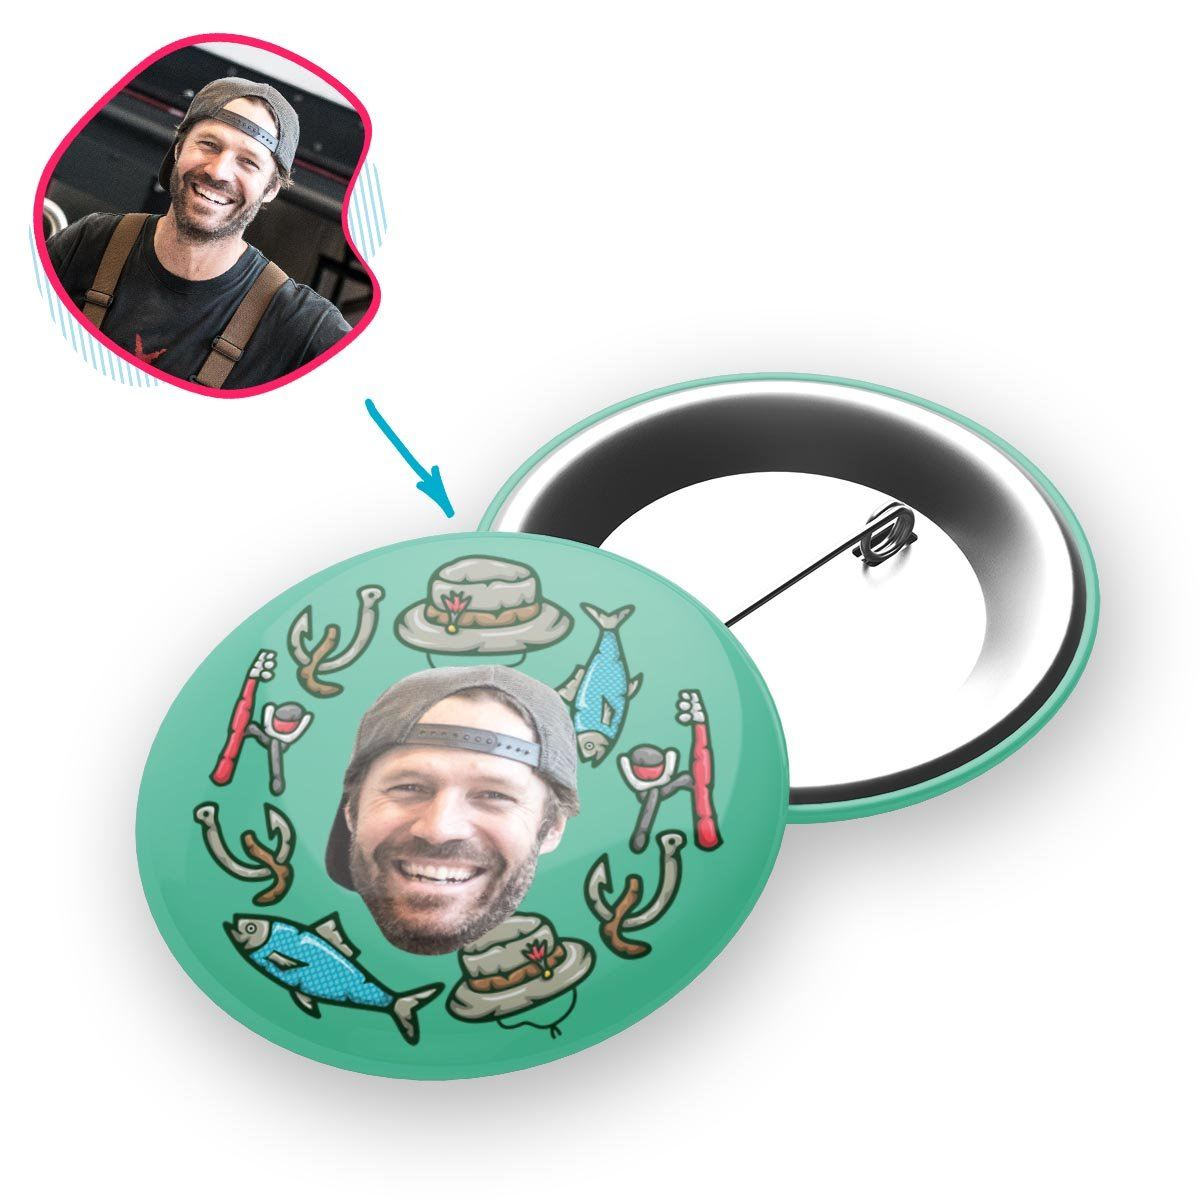 Mint Fishing personalized pin with photo of face printed on it